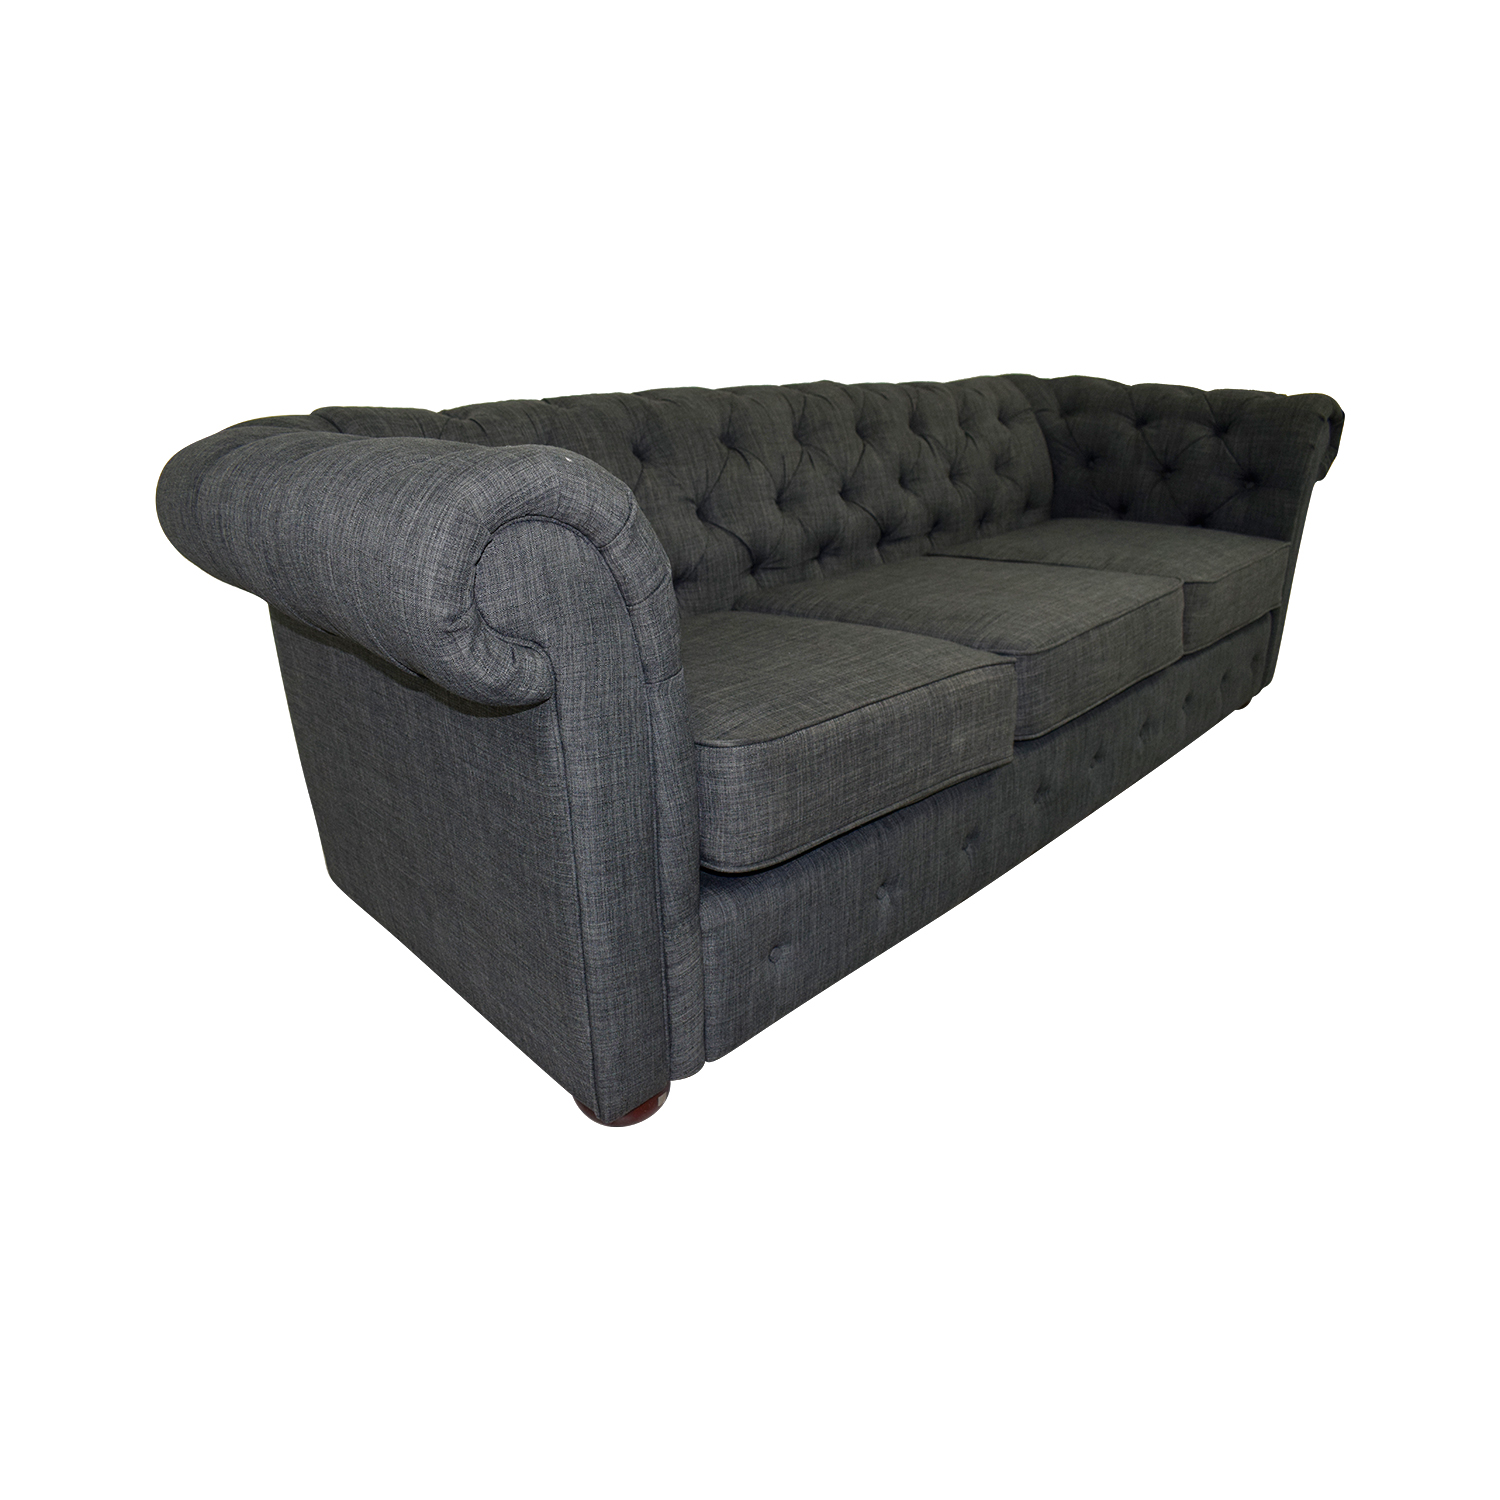 Buy A Chesterfield Sofa 63 Off Greenworld Chesterfield Style Charcoal Sofa Sofas